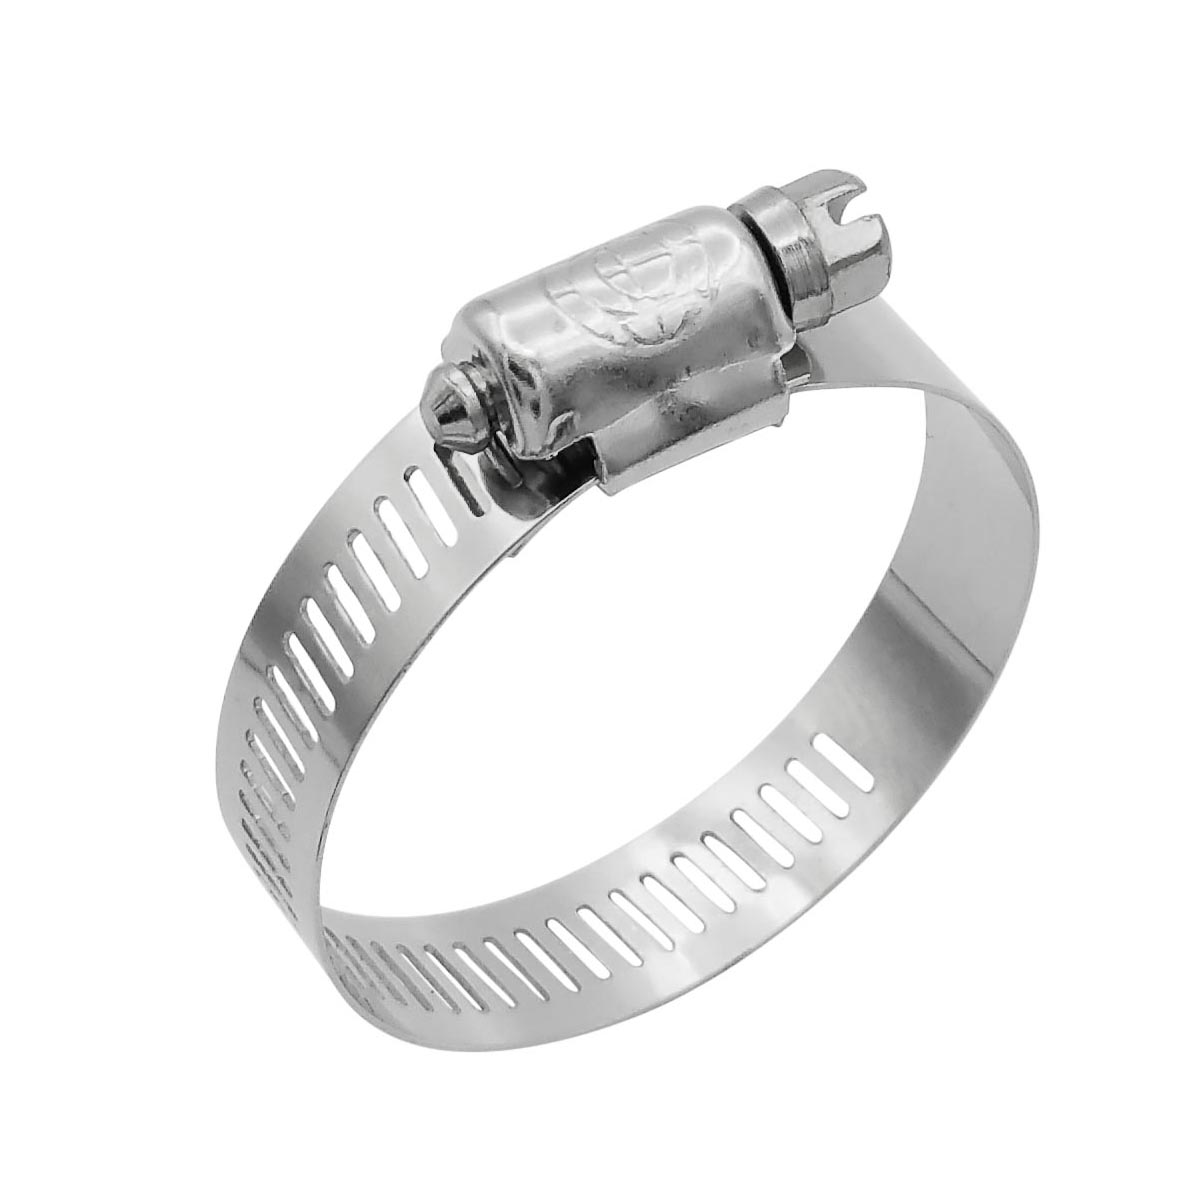 """Cambridge SAE Size 20 Worm Gear Hose Clamps, 10 pcs/Box. 1/2"""" Band Size, Min Dia 13/16"""", Max Dia 1-3/4"""", Exceeds 60 inch-pounds of torque. Stainless Steel Band & Housing, Zinc Plated Screw."""